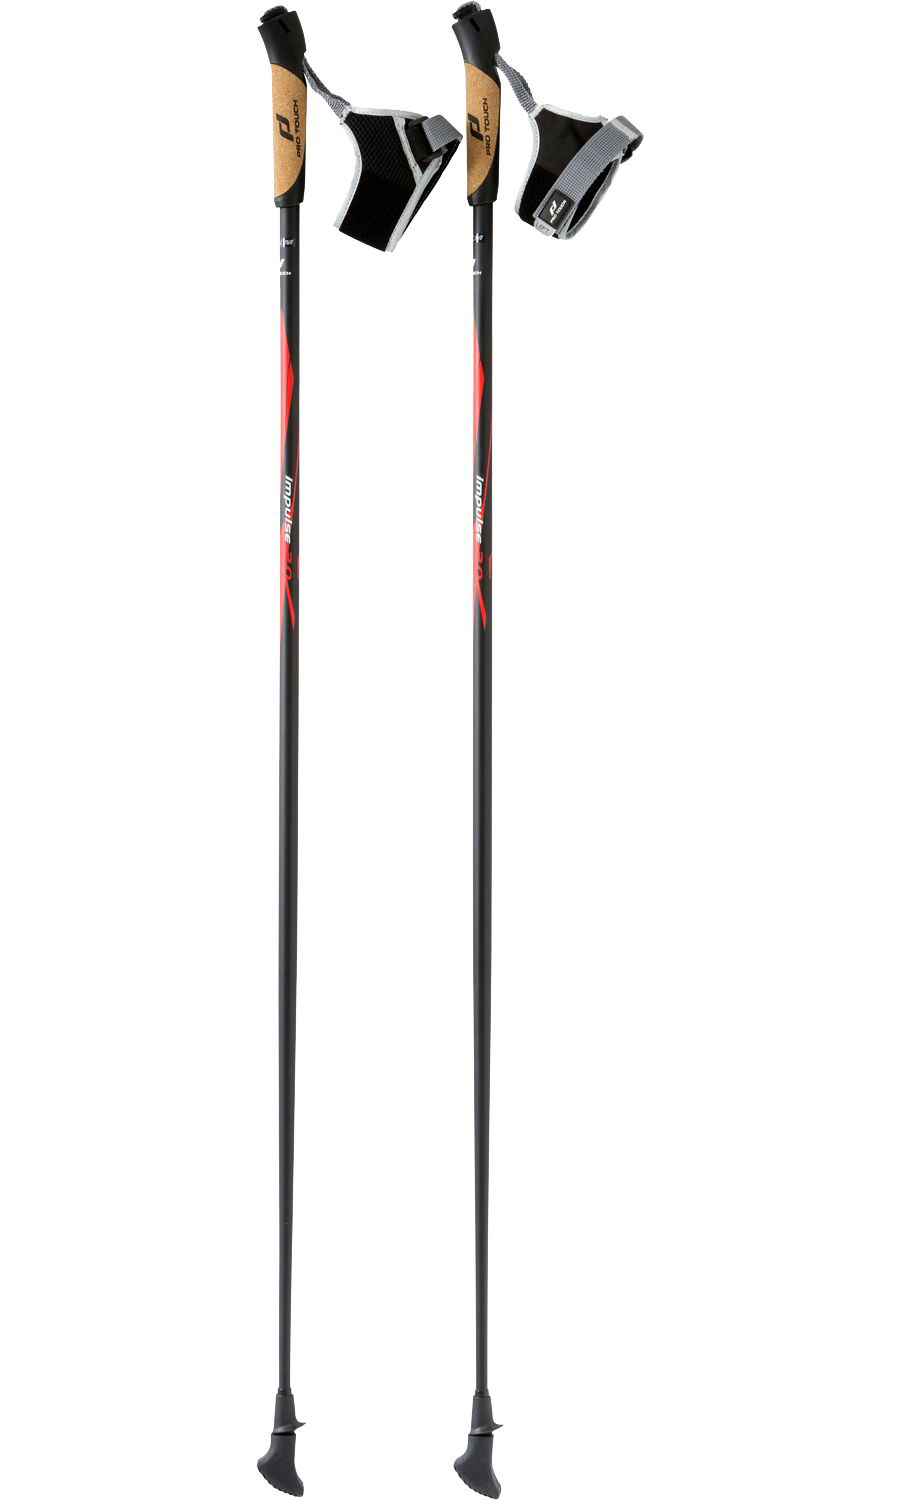 Nordic Walking Stöcke Impulse 2.0